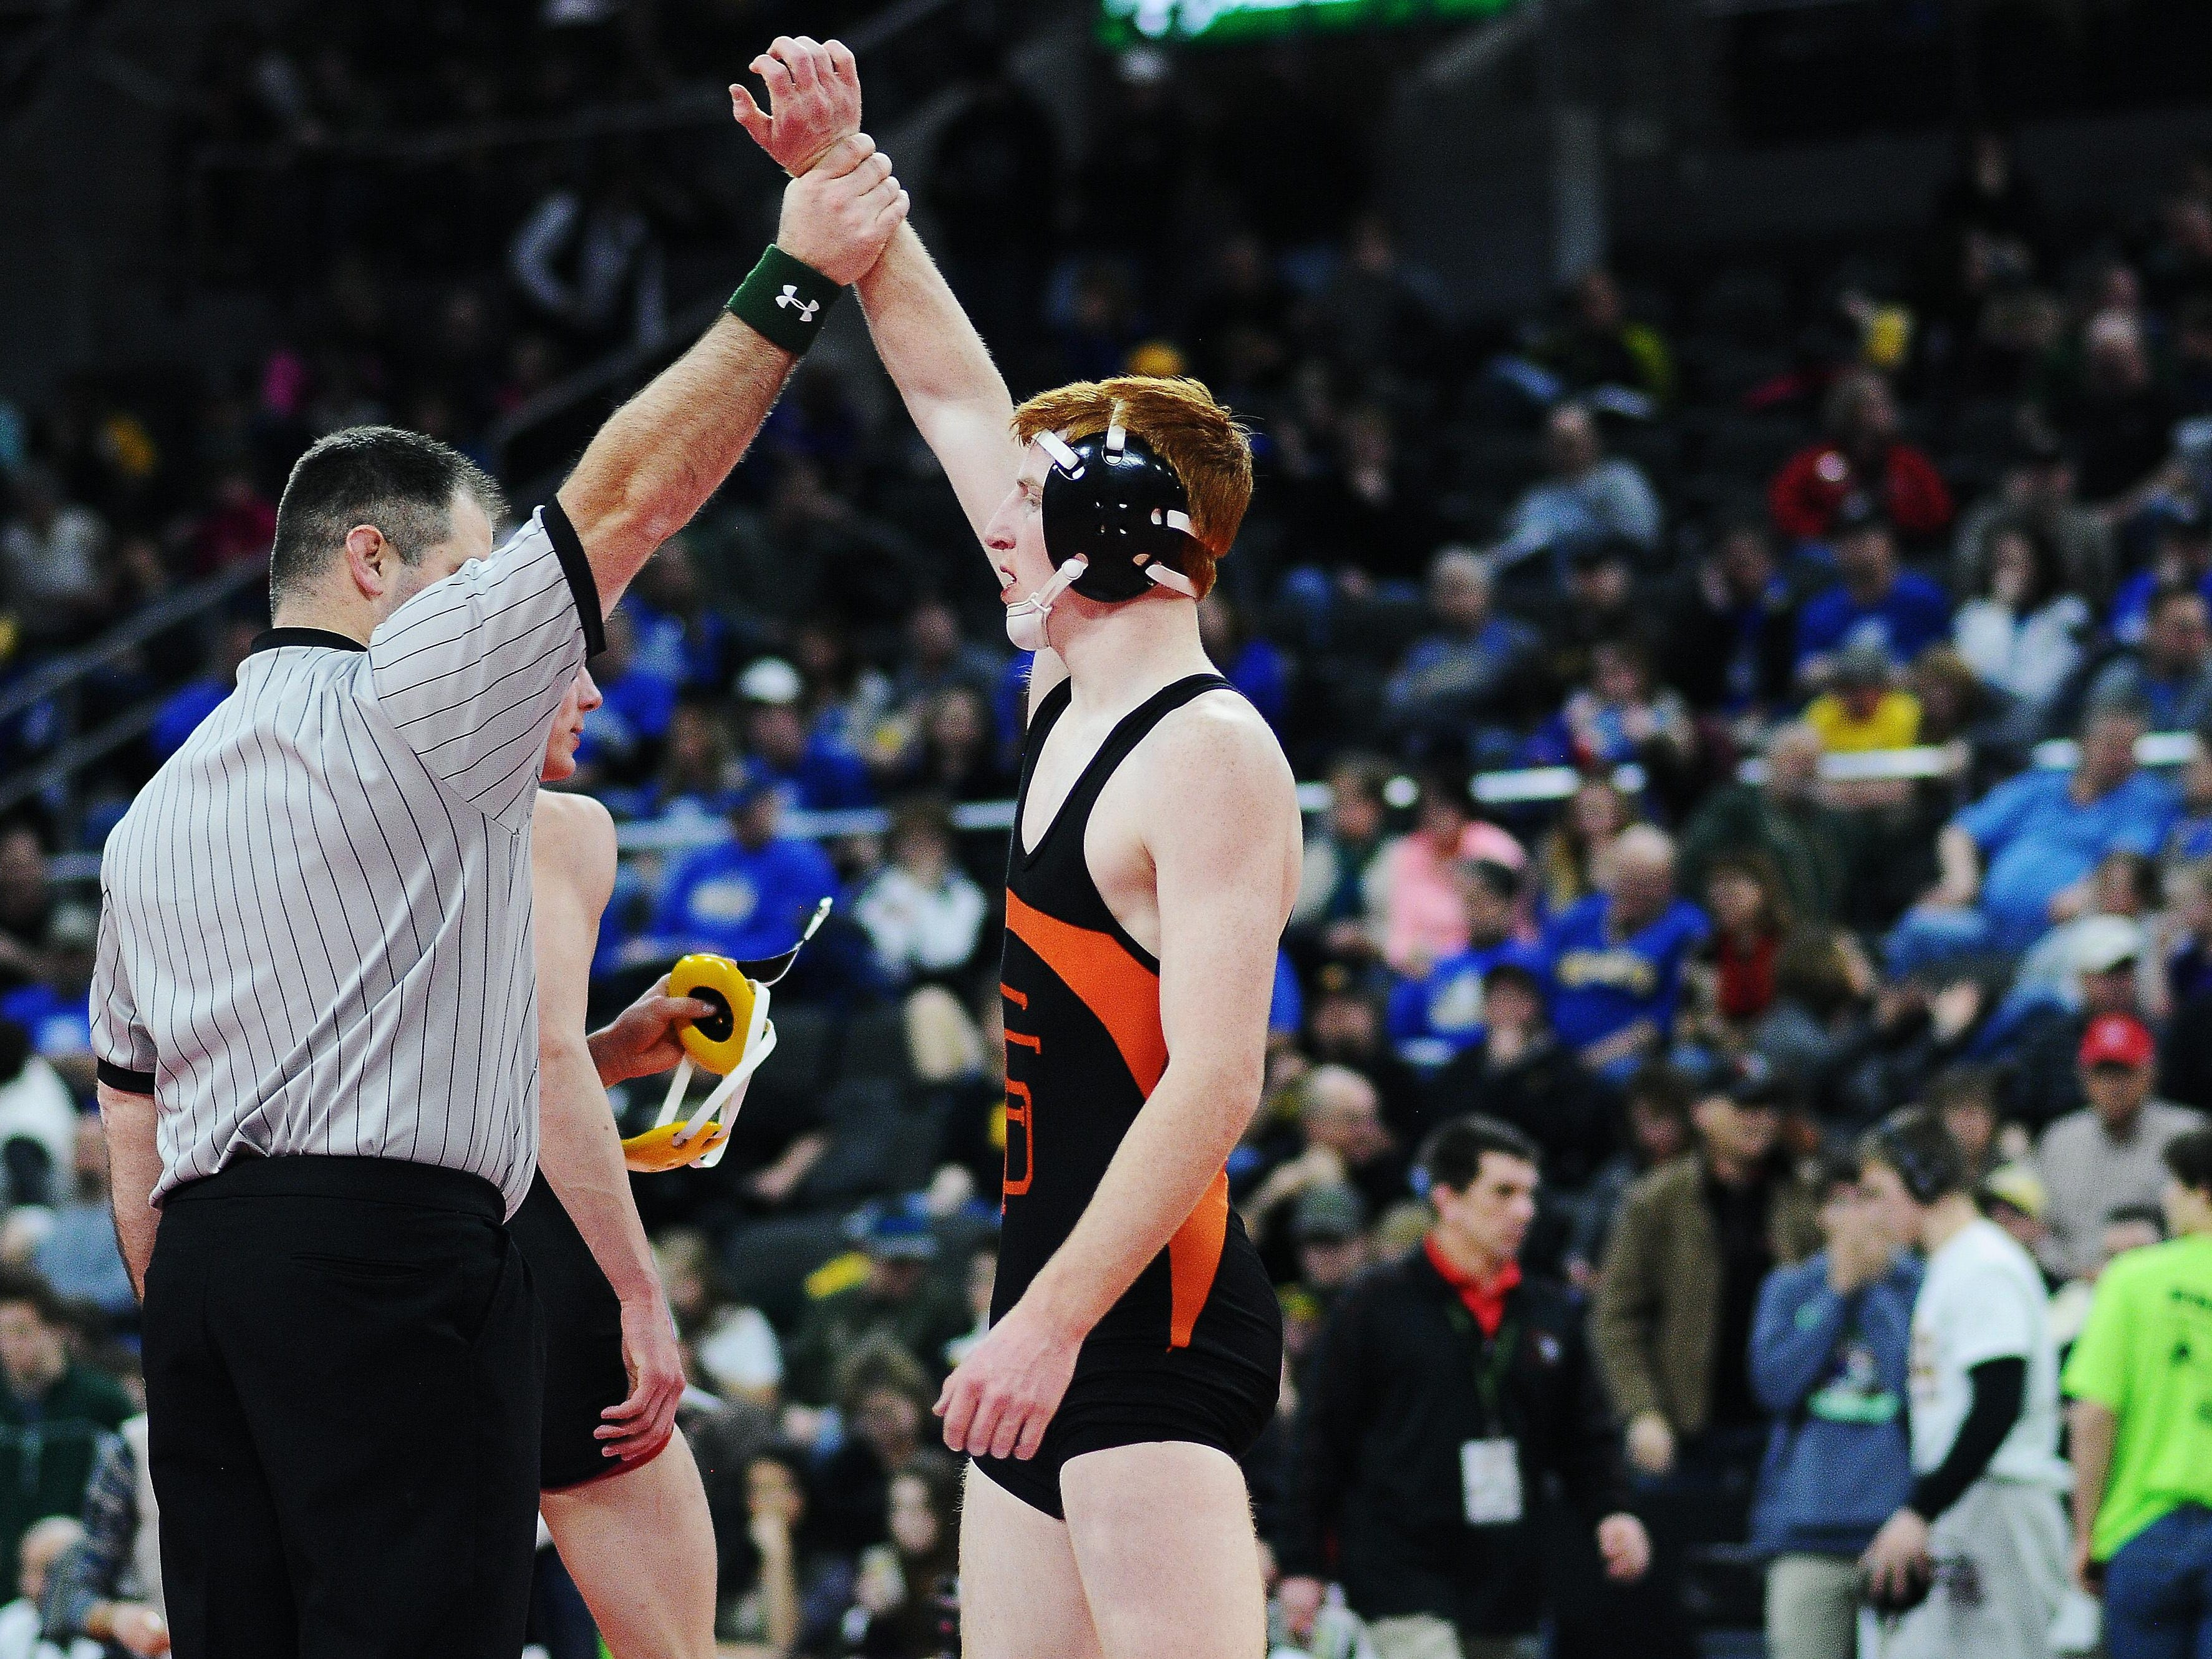 """An official holds up the arm of Washington's Hunter O'Connor after he defeated Roosevelt's Carter Lohr during a 132-pound weight class match during the SDHSAA South Dakota State Class """"A"""" Wrestling Tournament on Friday, Feb. 27, 2015, at the Denny Sanford Premier Center in Sioux Falls, S.D."""